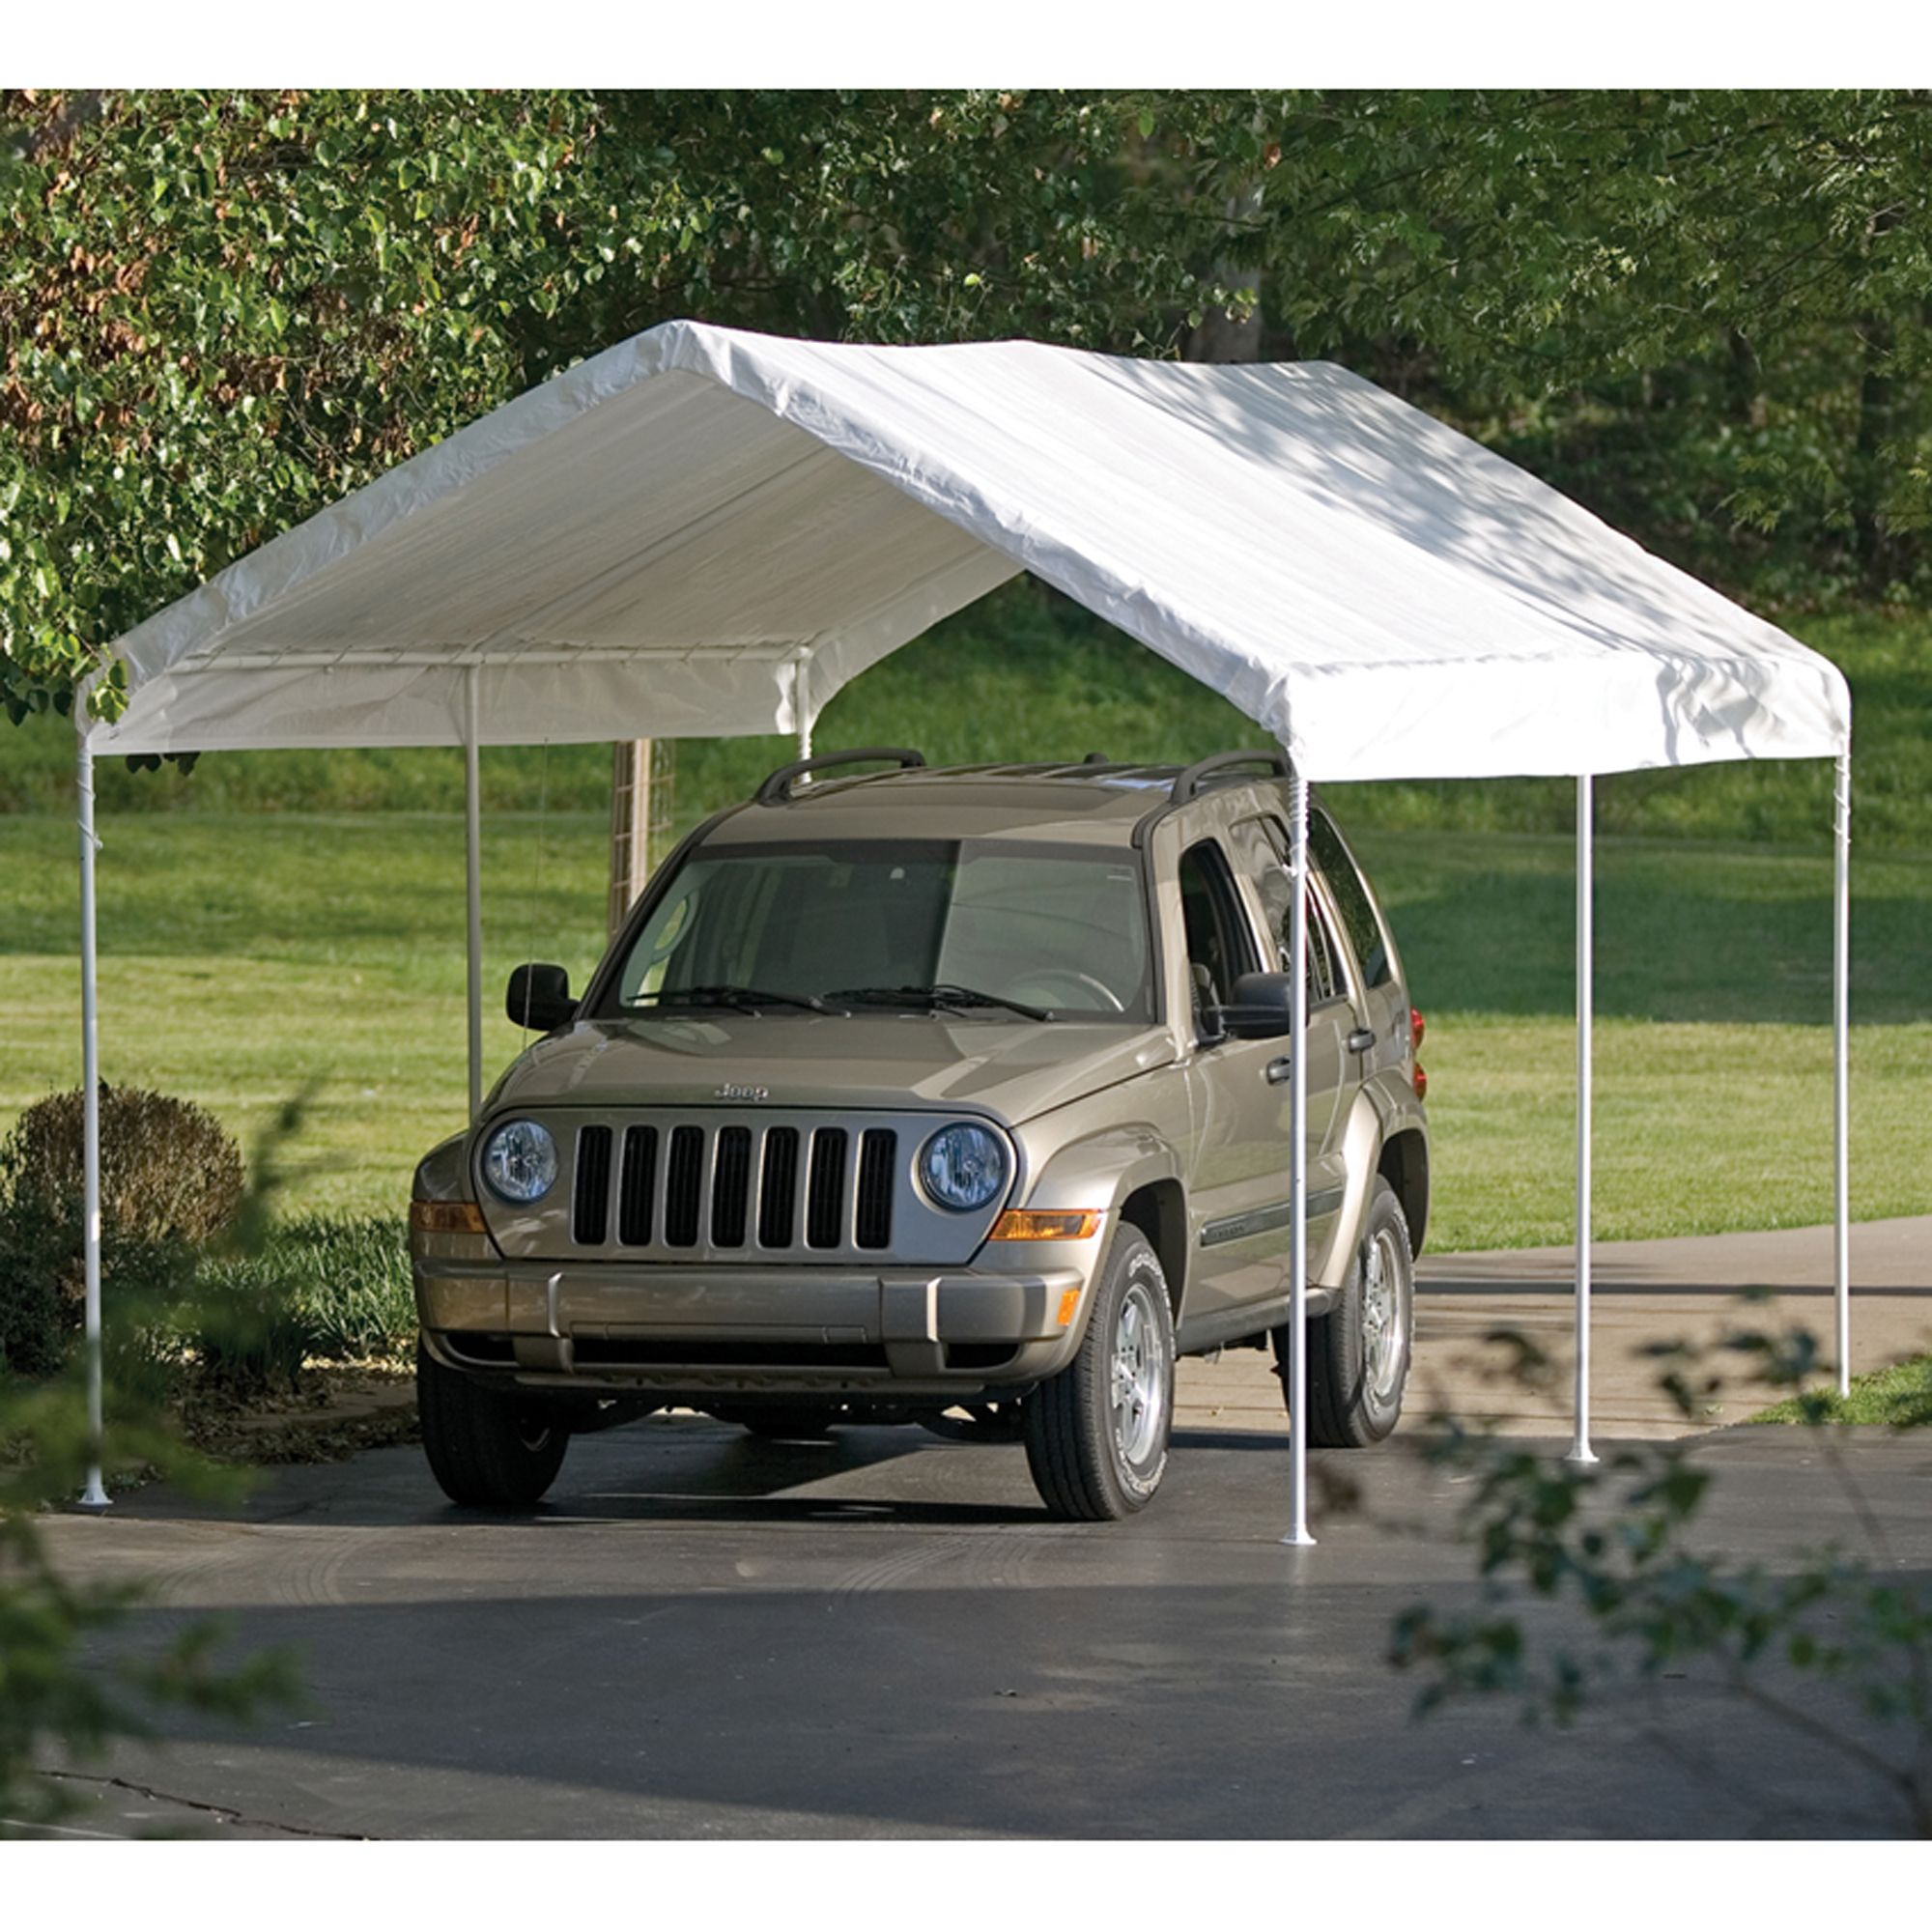 Shelterlogic 10 Ft. X 20 Max Ap Canopy